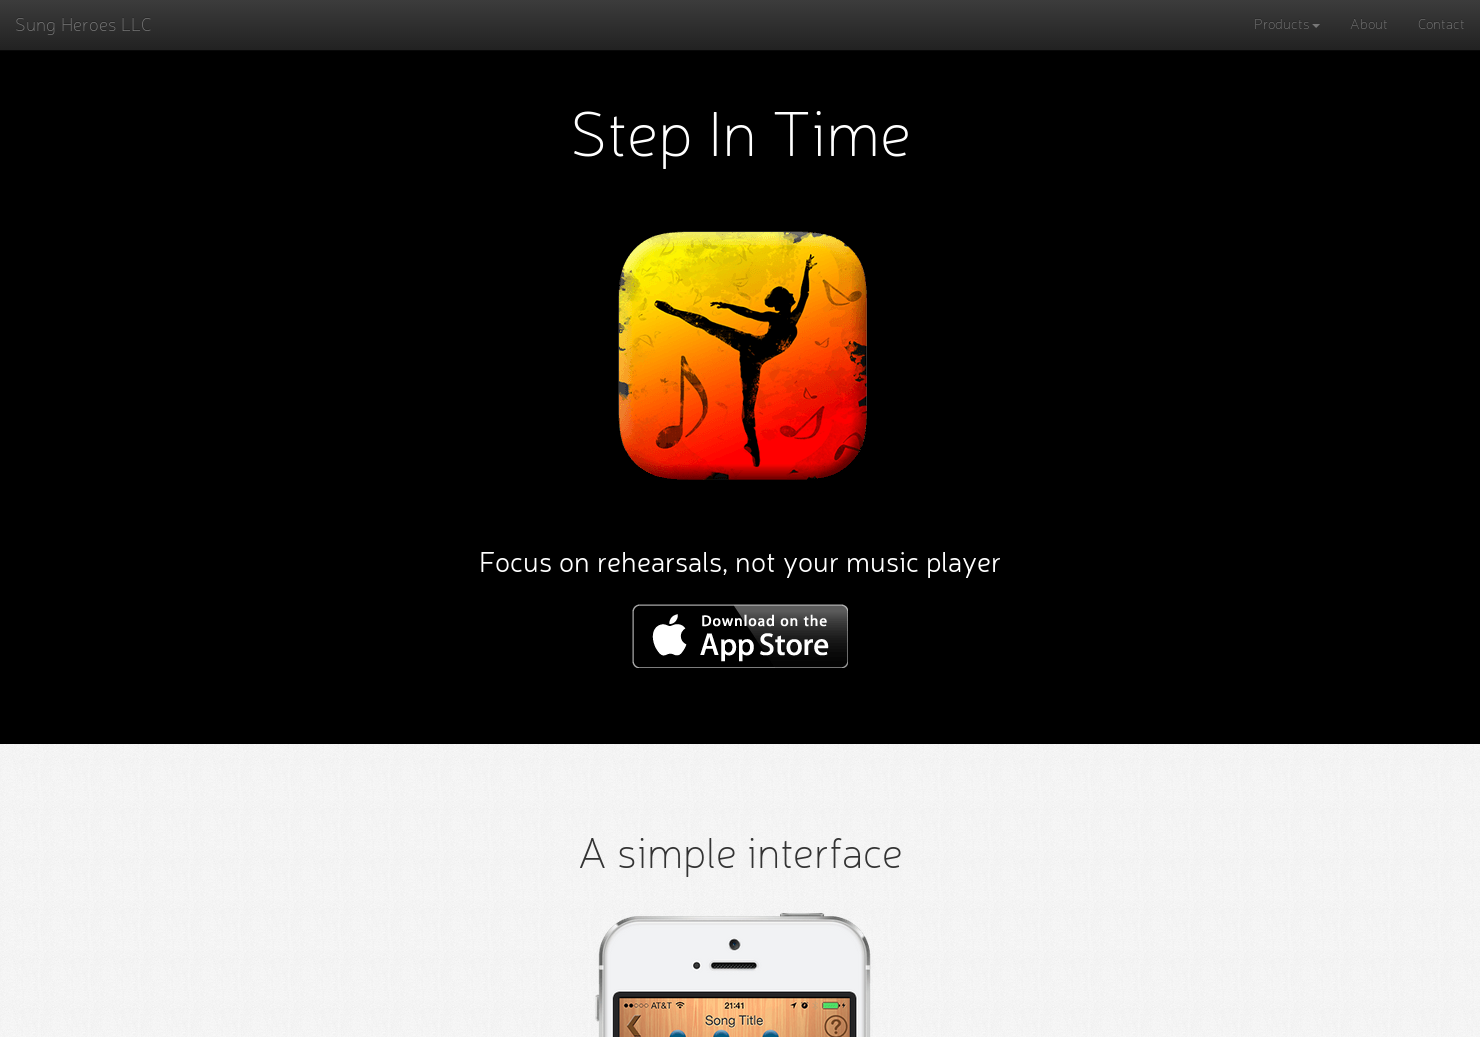 Step in Time - A music player app for rehearsals   Product Hunt